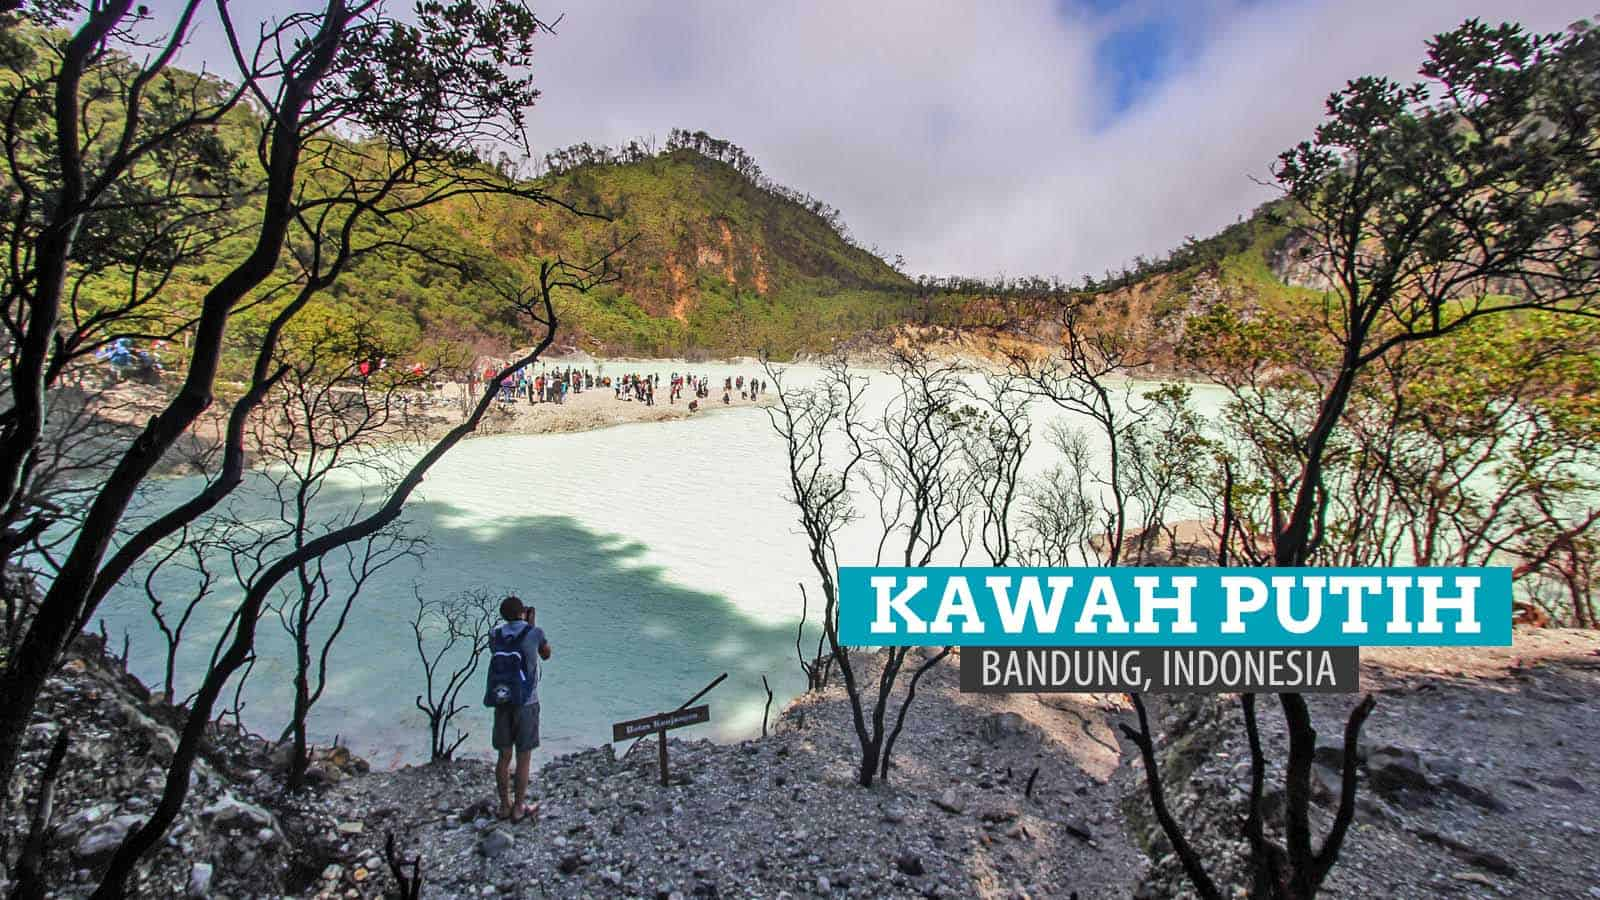 4 DAYS 3 NIGHTS JAKARTA - BANDUNG + TANGKUBAN PERAHU / KAWAH PUTIH (GROUND ONLY OR WITH FLIGHT)